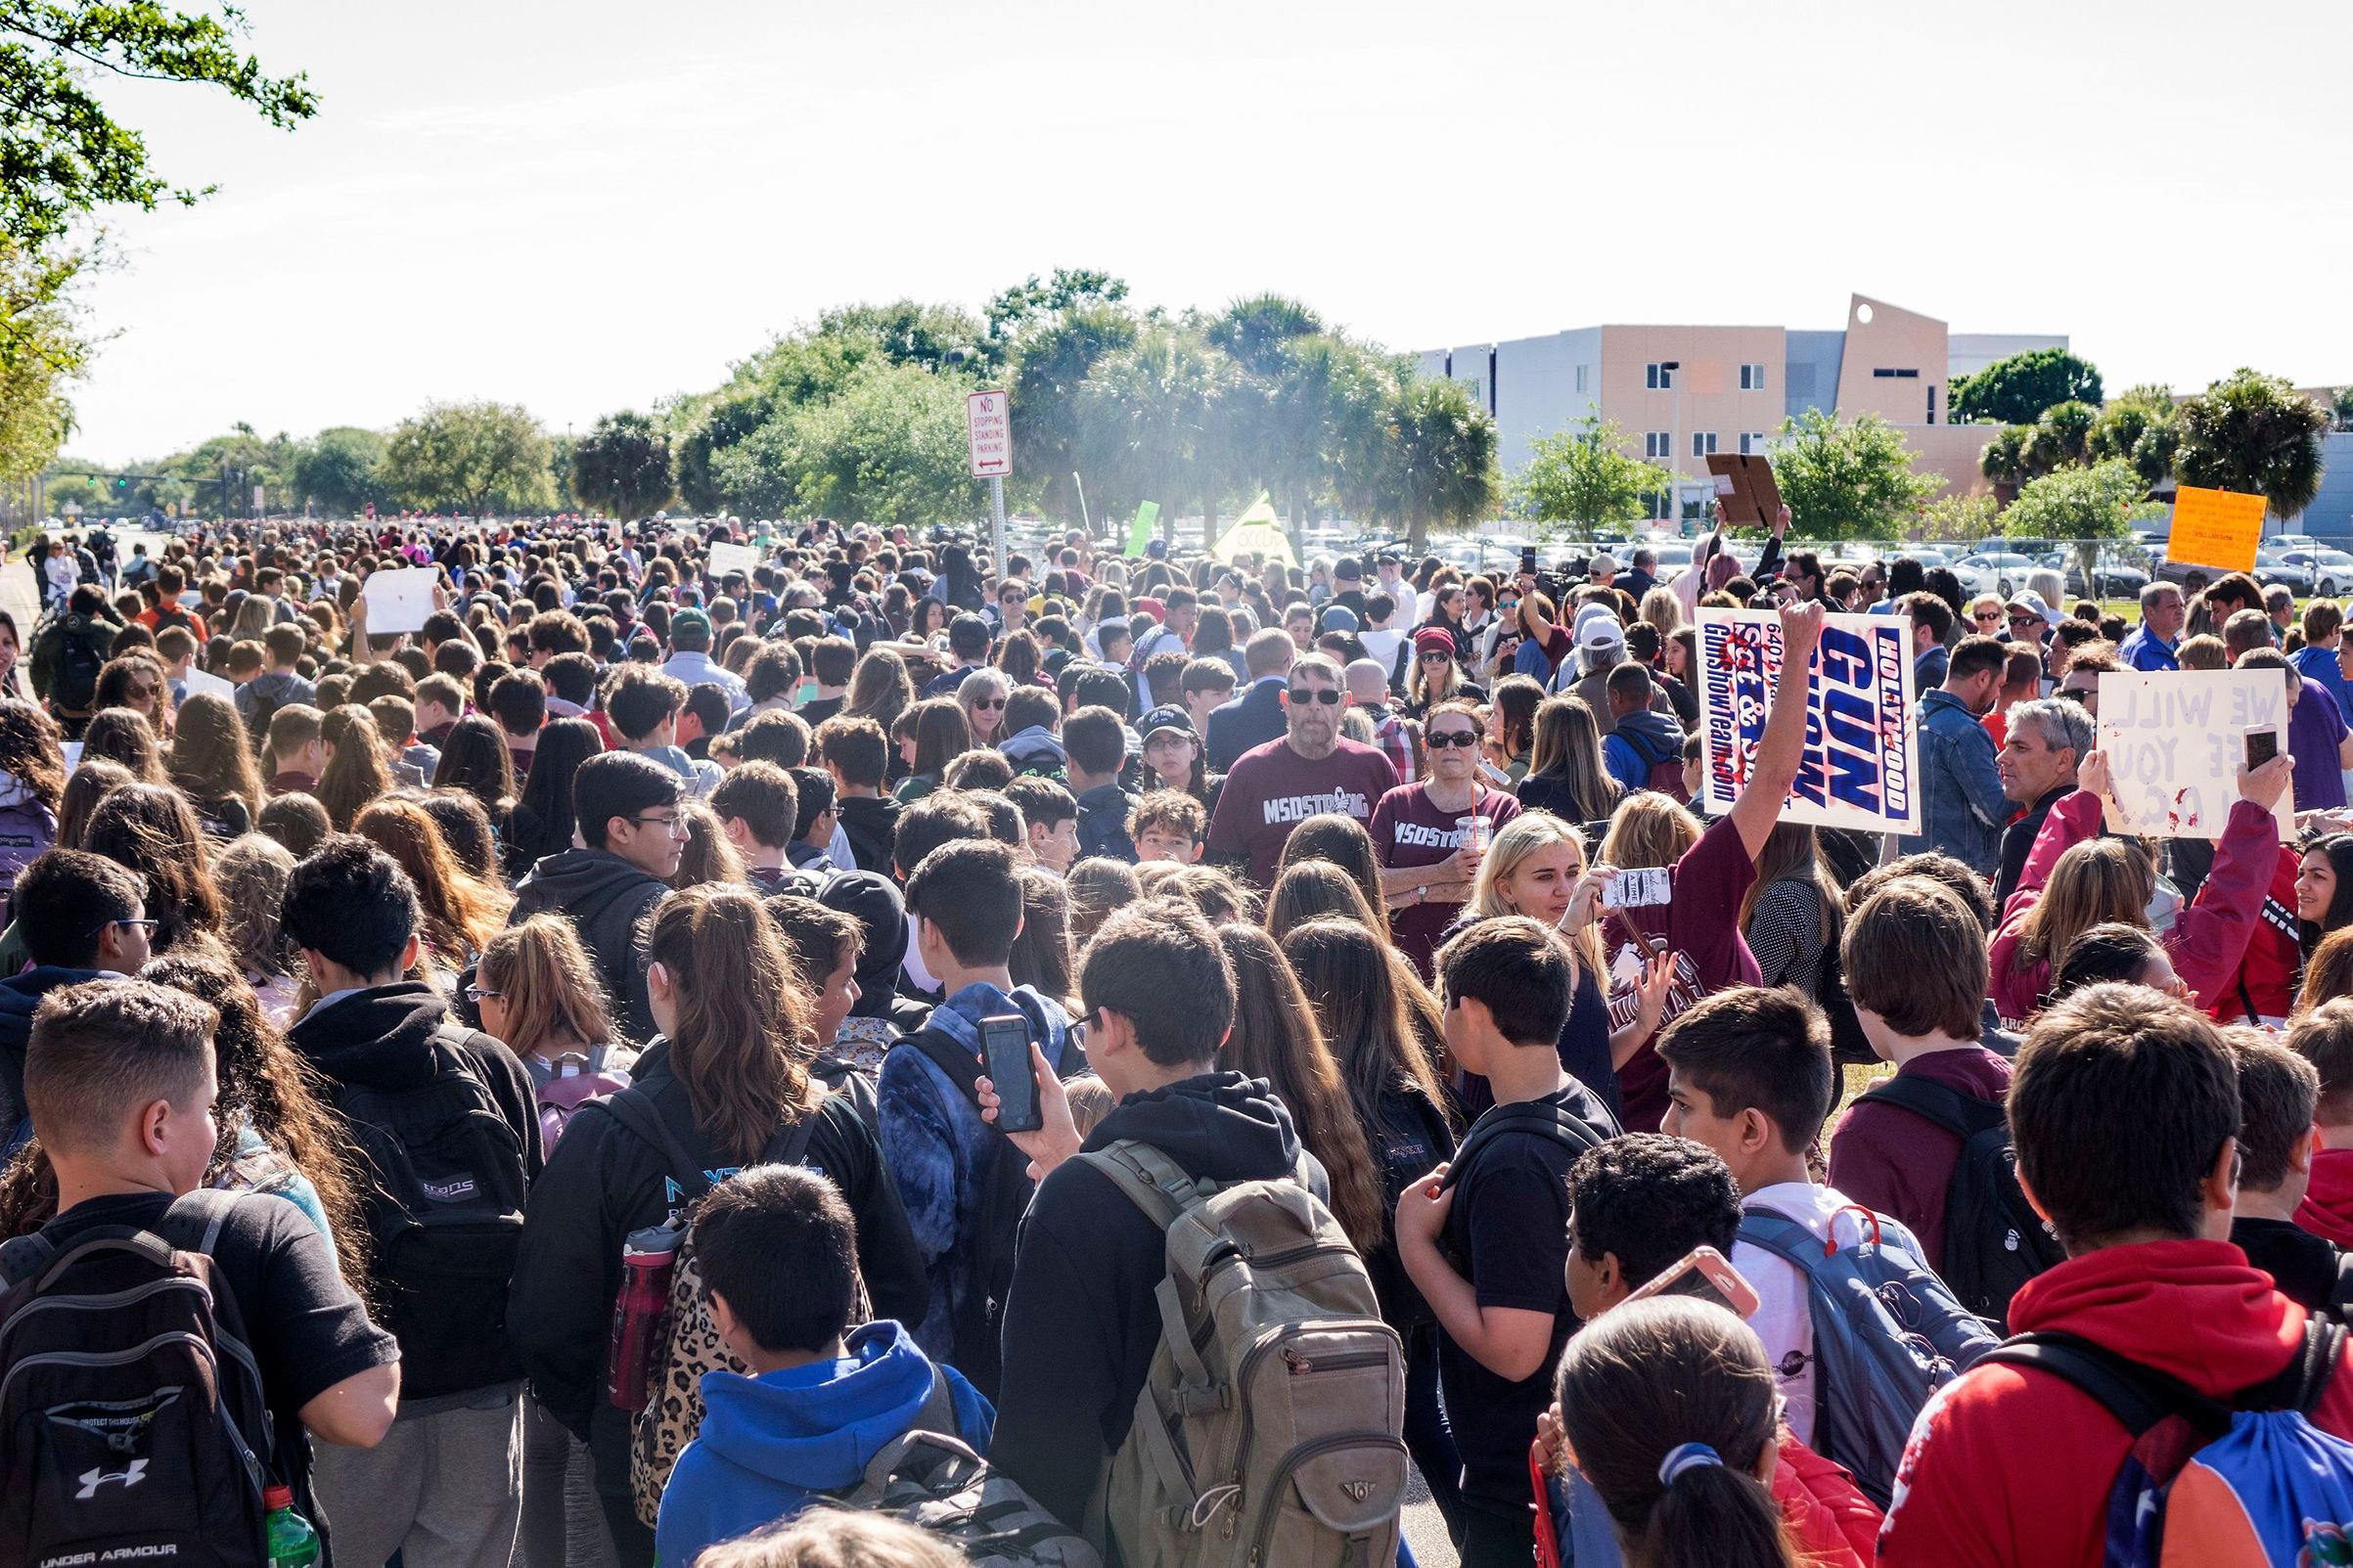 Community members and students participate in the national school walkout outside the Marjory Stoneman Douglas High School in Parkland, Fla., on March 14, 2018.